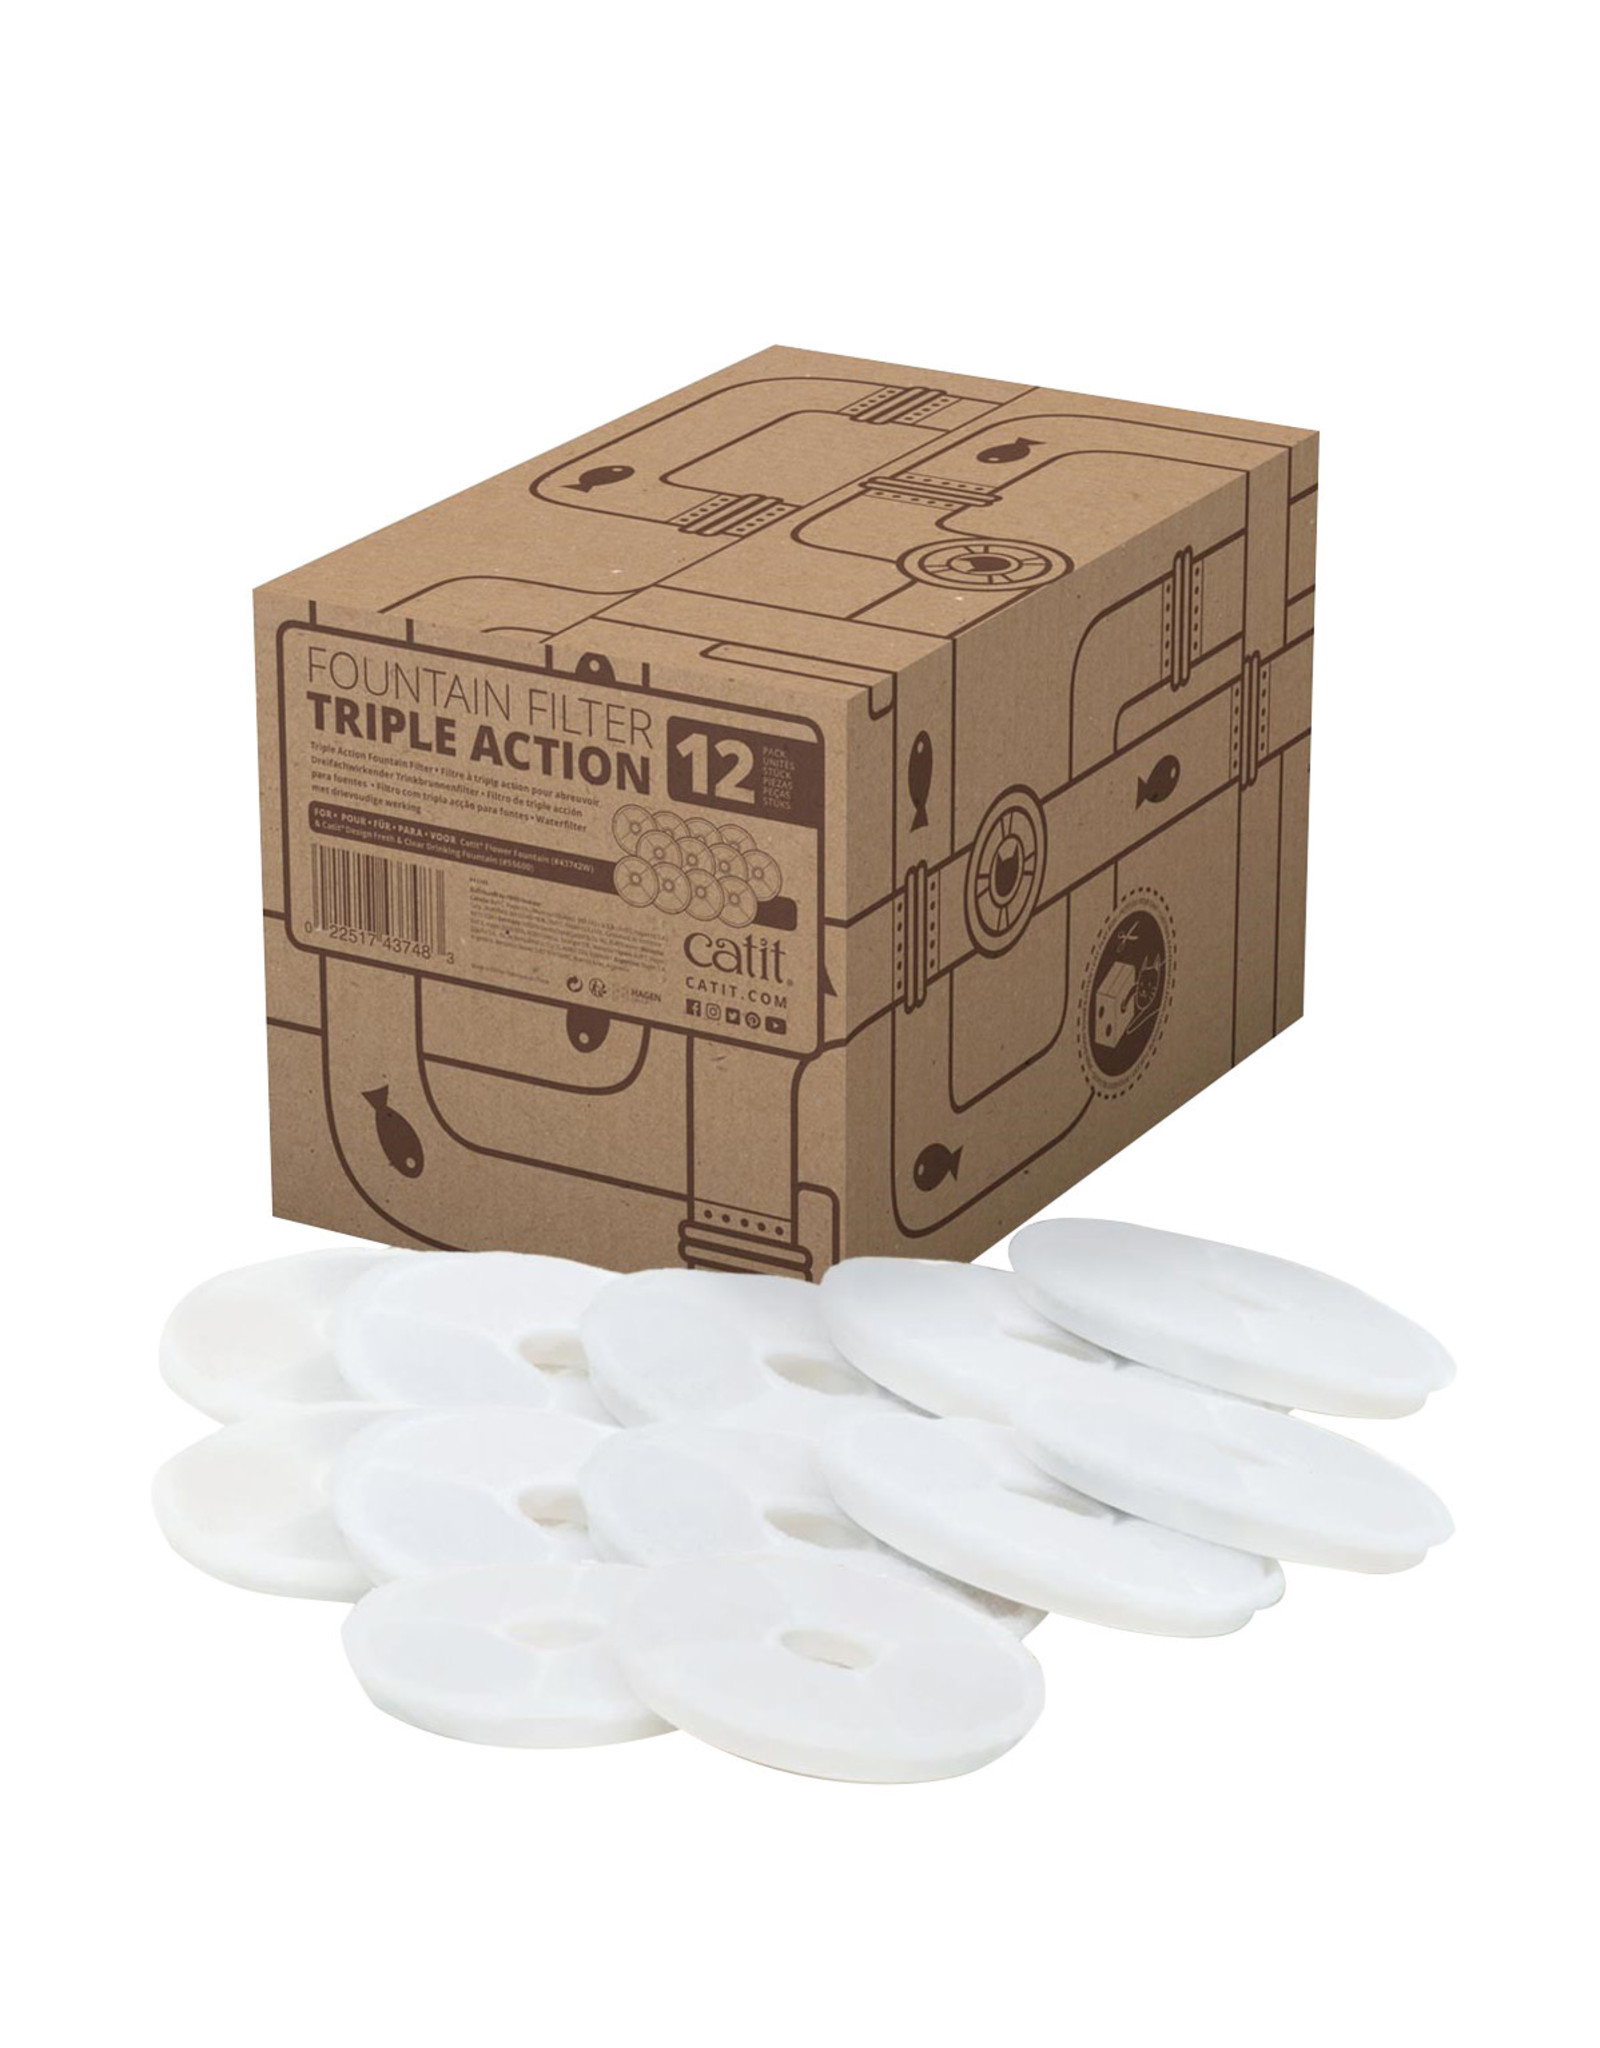 CT - Catit 2.0 Catit Triple Action Fountain Filter - 12 pack